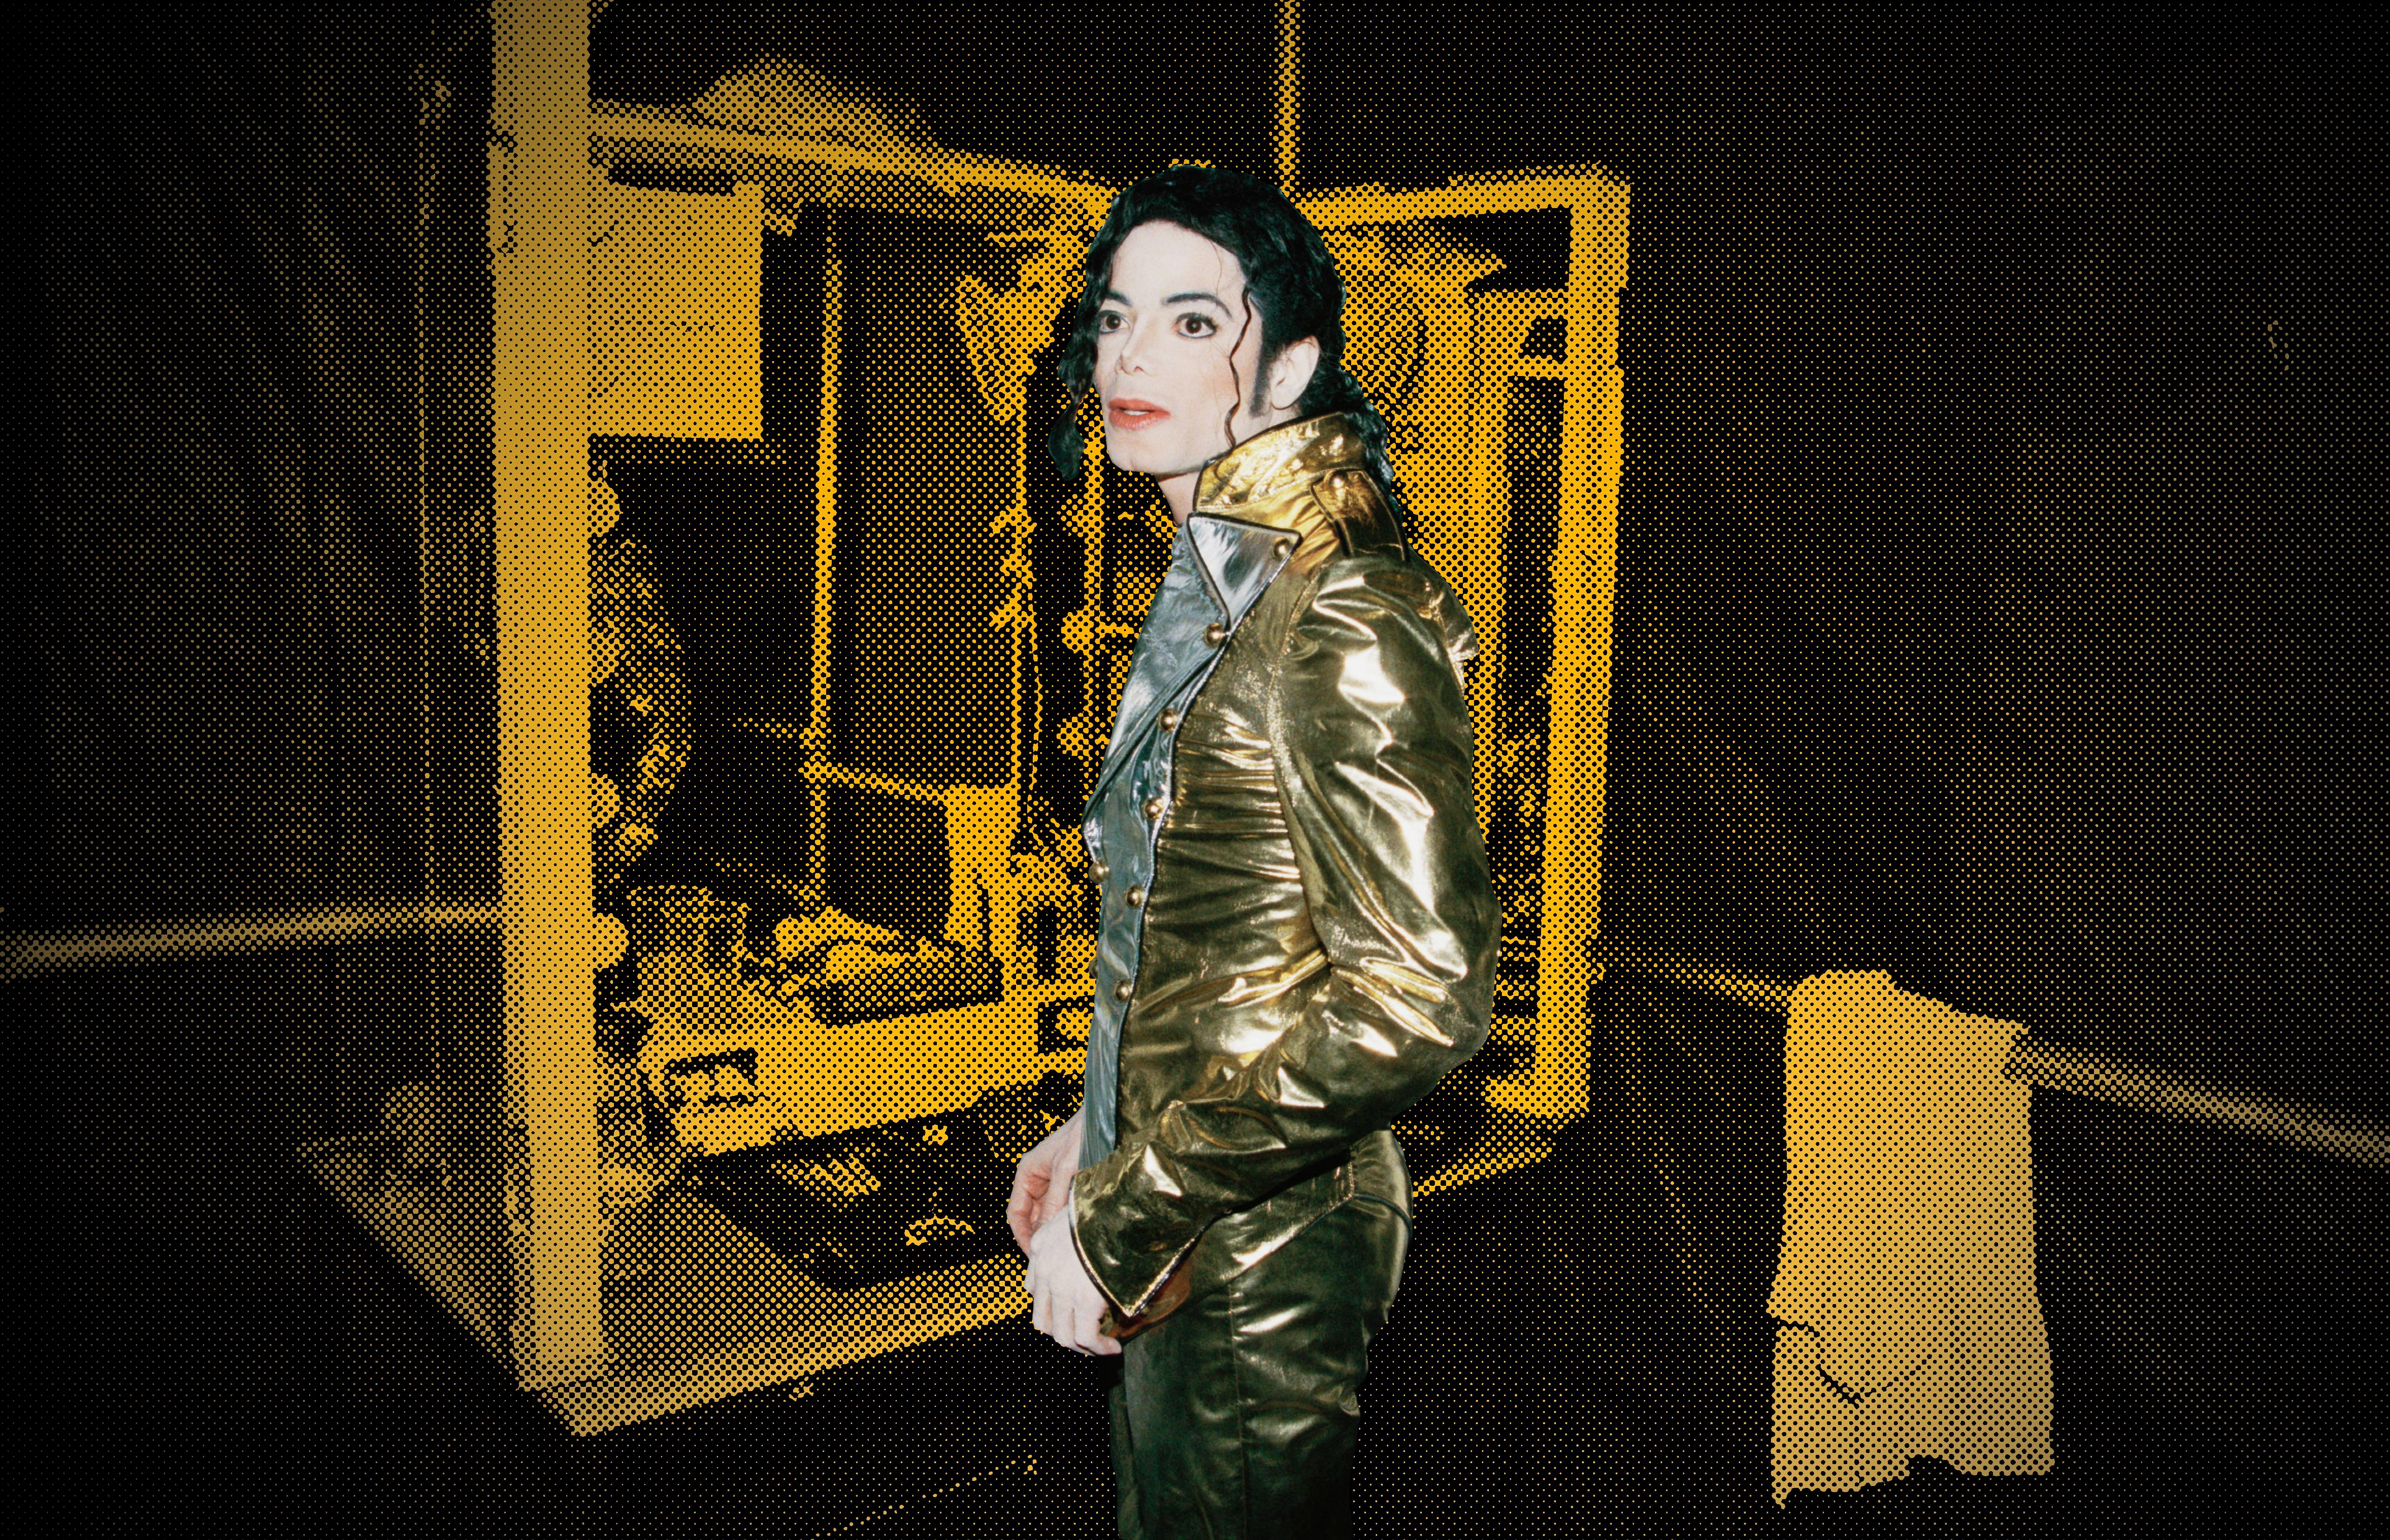 Michael Jackson backstage during one of his shows in Bremen, Germany, in